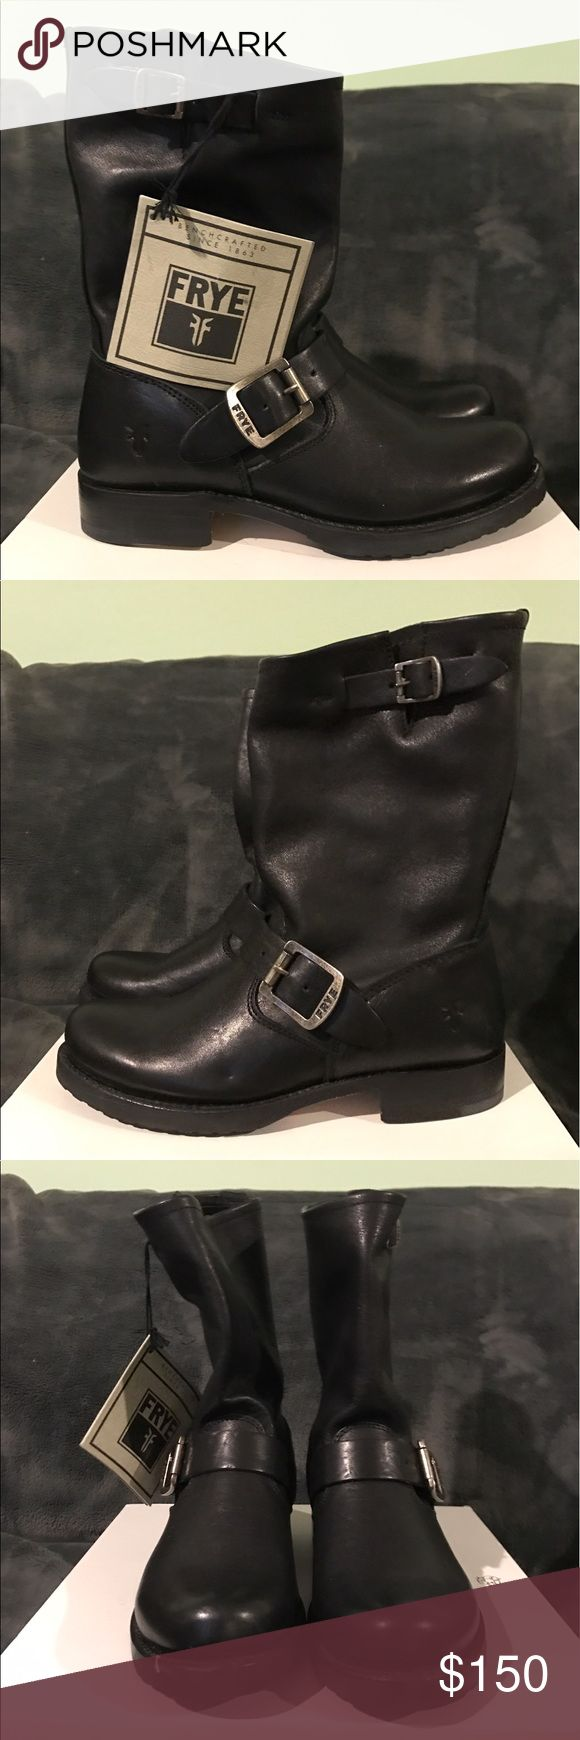 NWT Frye Veronica Engineer Boots - size 5.5 New with tags, Frye Veronica Engineer boots. Gorgeous black leather. Does not come with a box. Frye Shoes Combat & Moto Boots